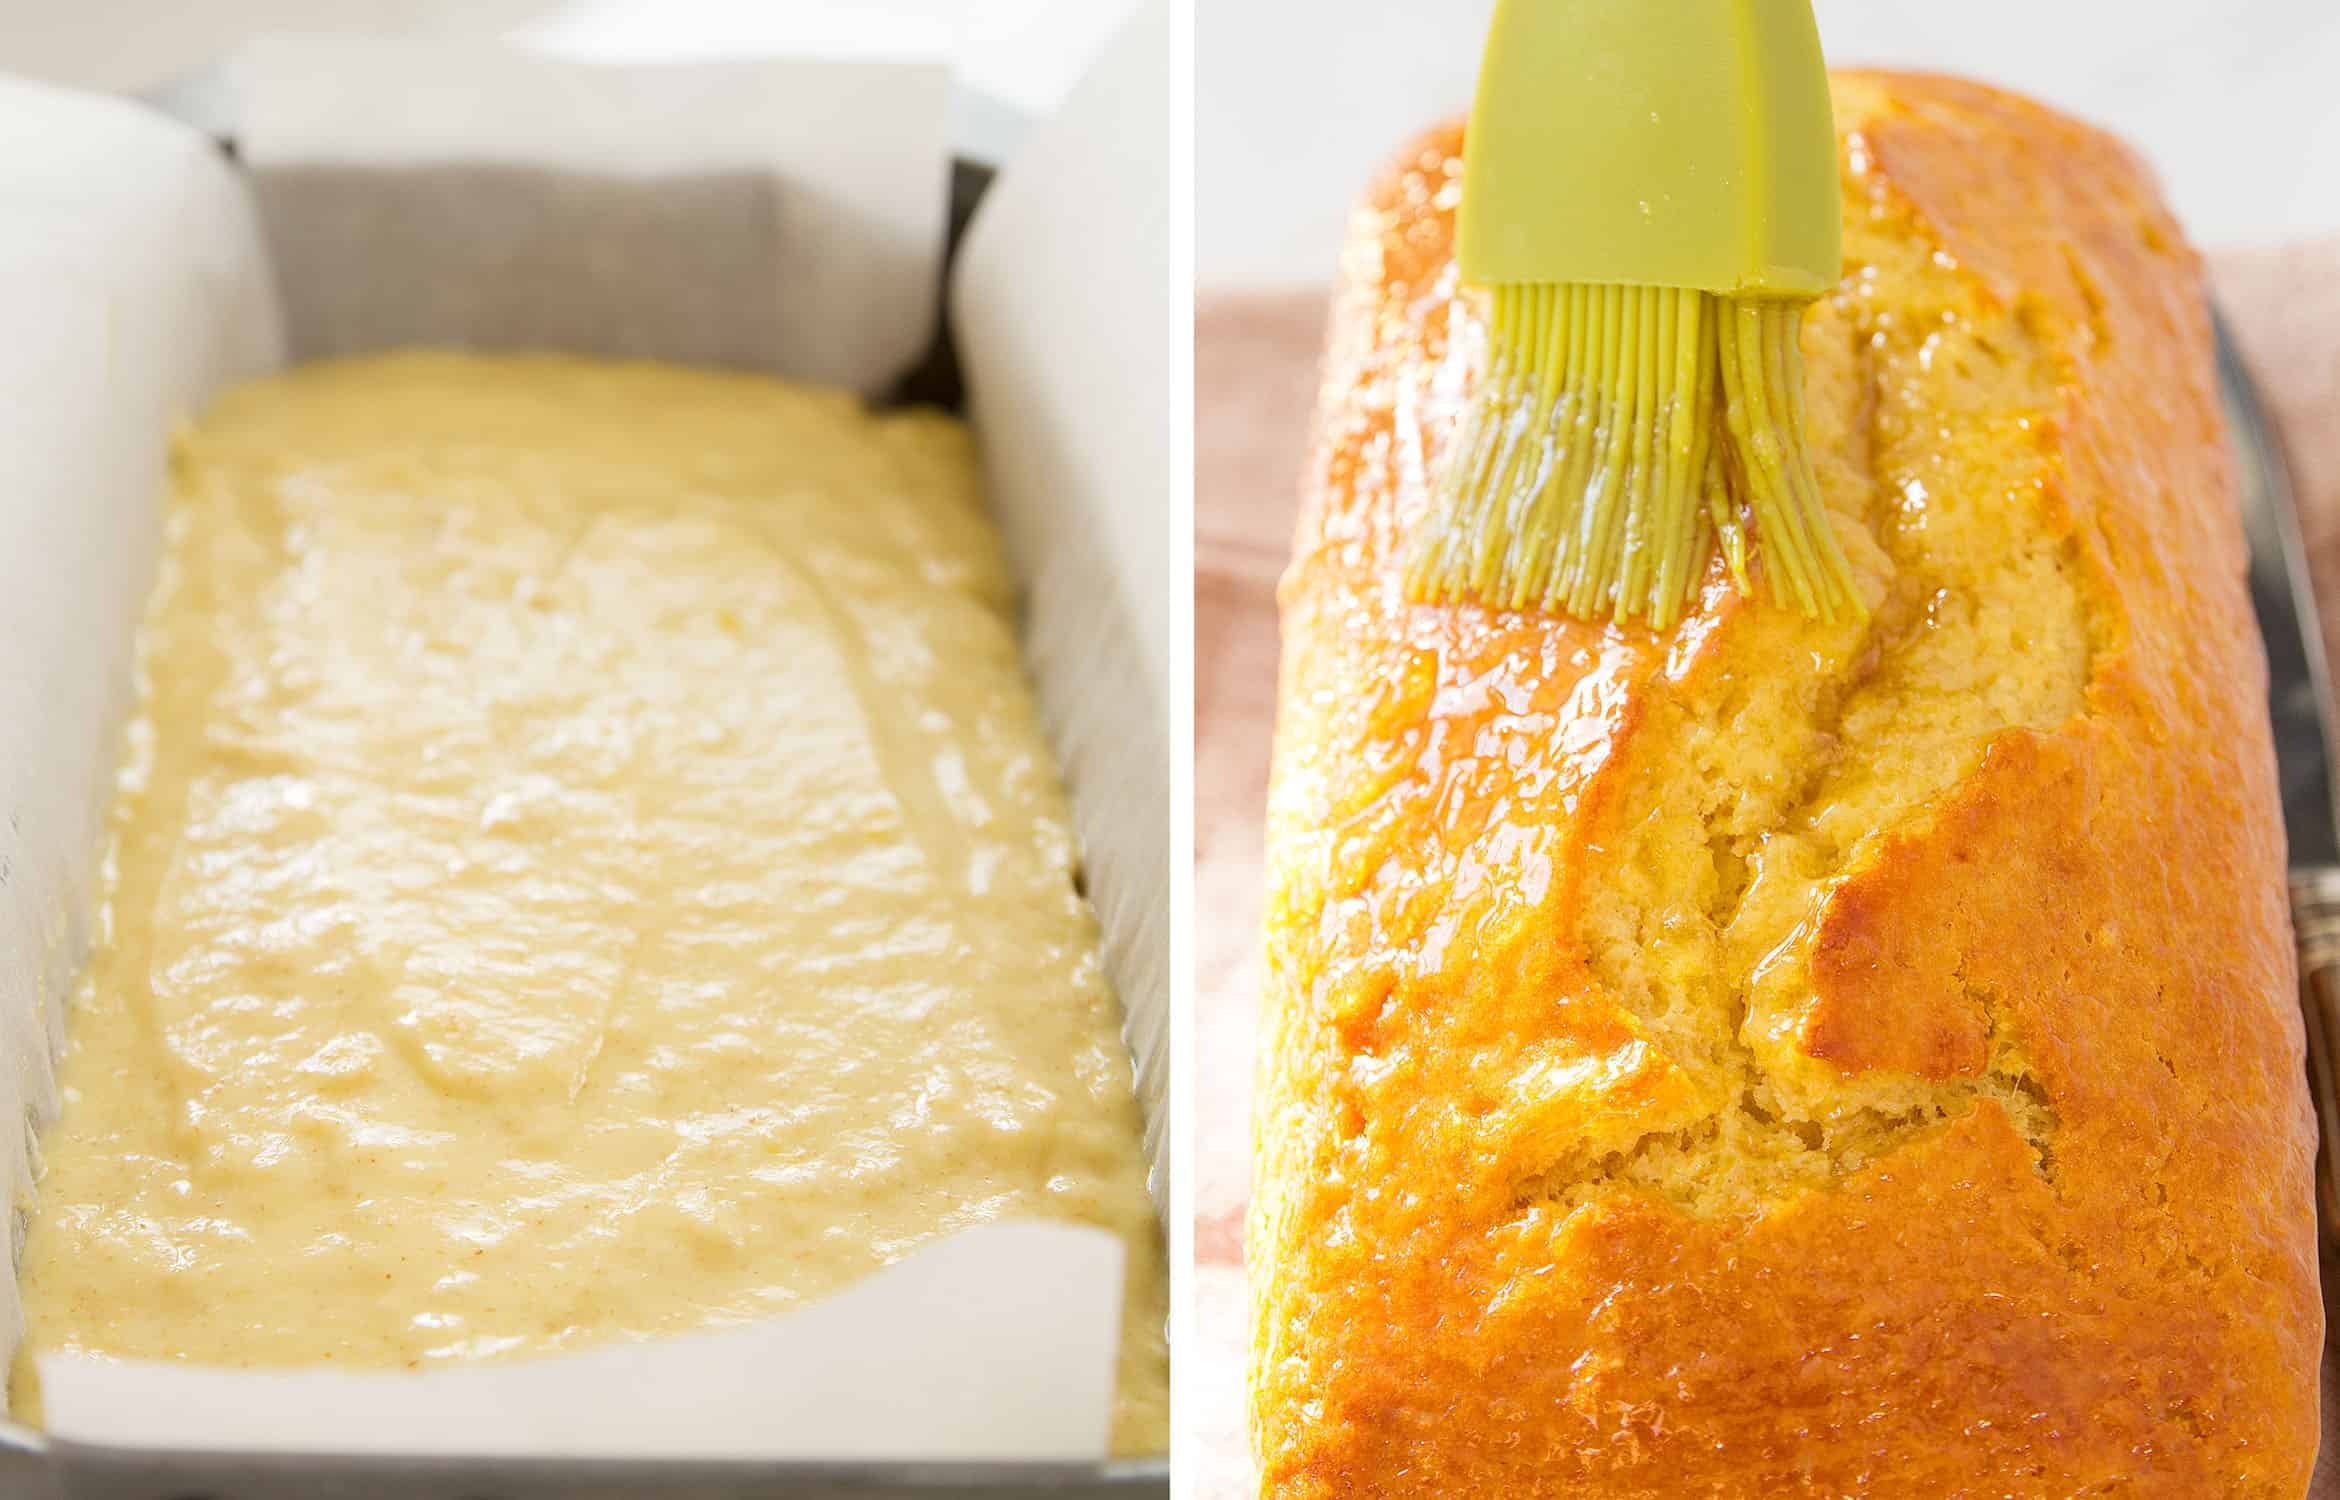 The yogurt cake batter in a loaf pan before and after baking.